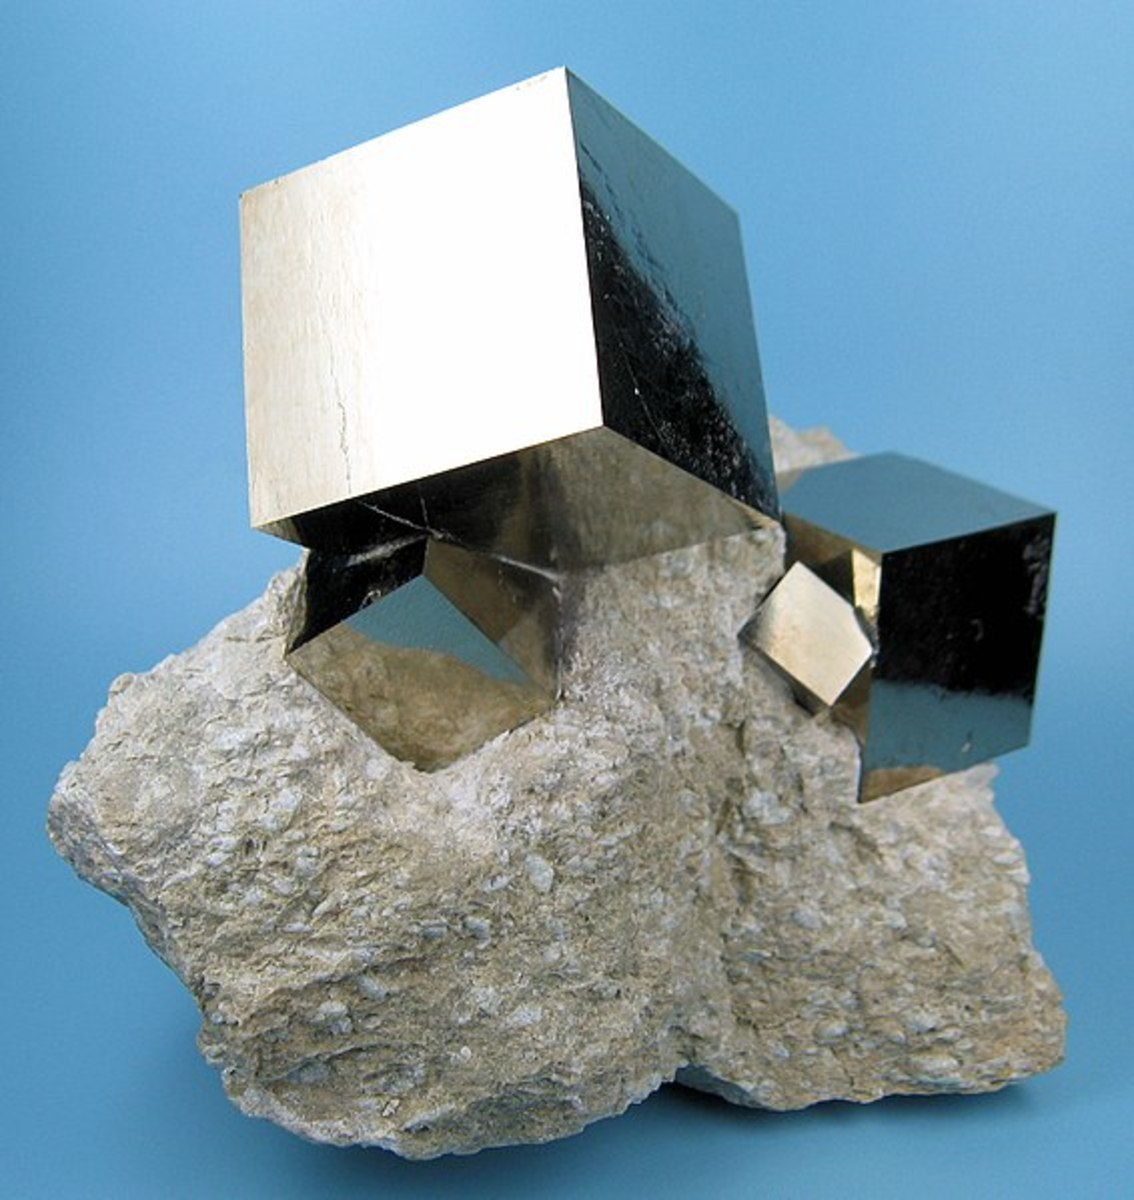 Pyrite has a number of diverse uses, including in the production of sulphuric acid, in jewellery and as a potential candidate for new solar cells